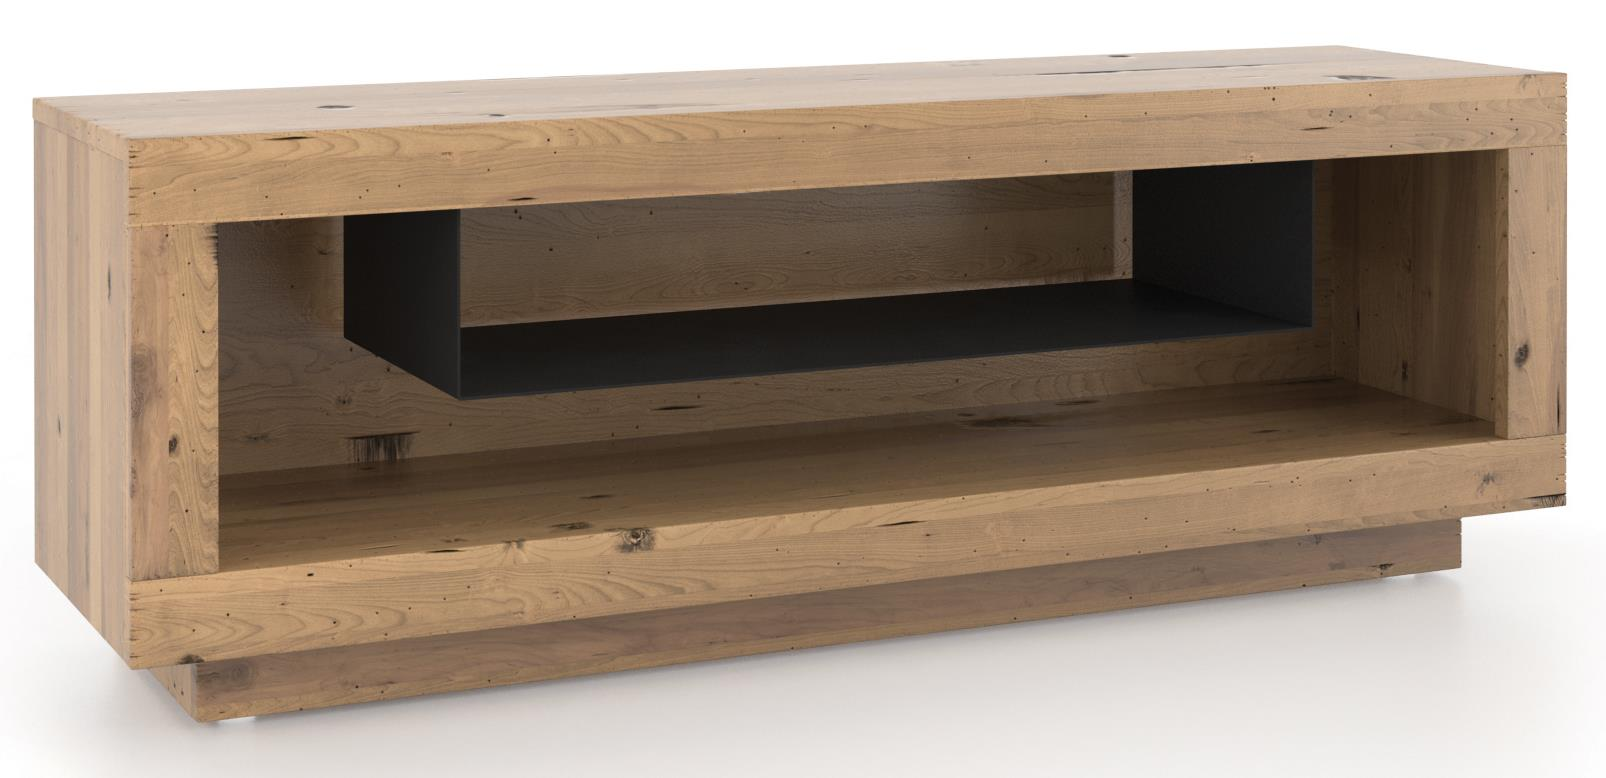 Loft - Living Customizable Media Unit by Canadel at Dinette Depot